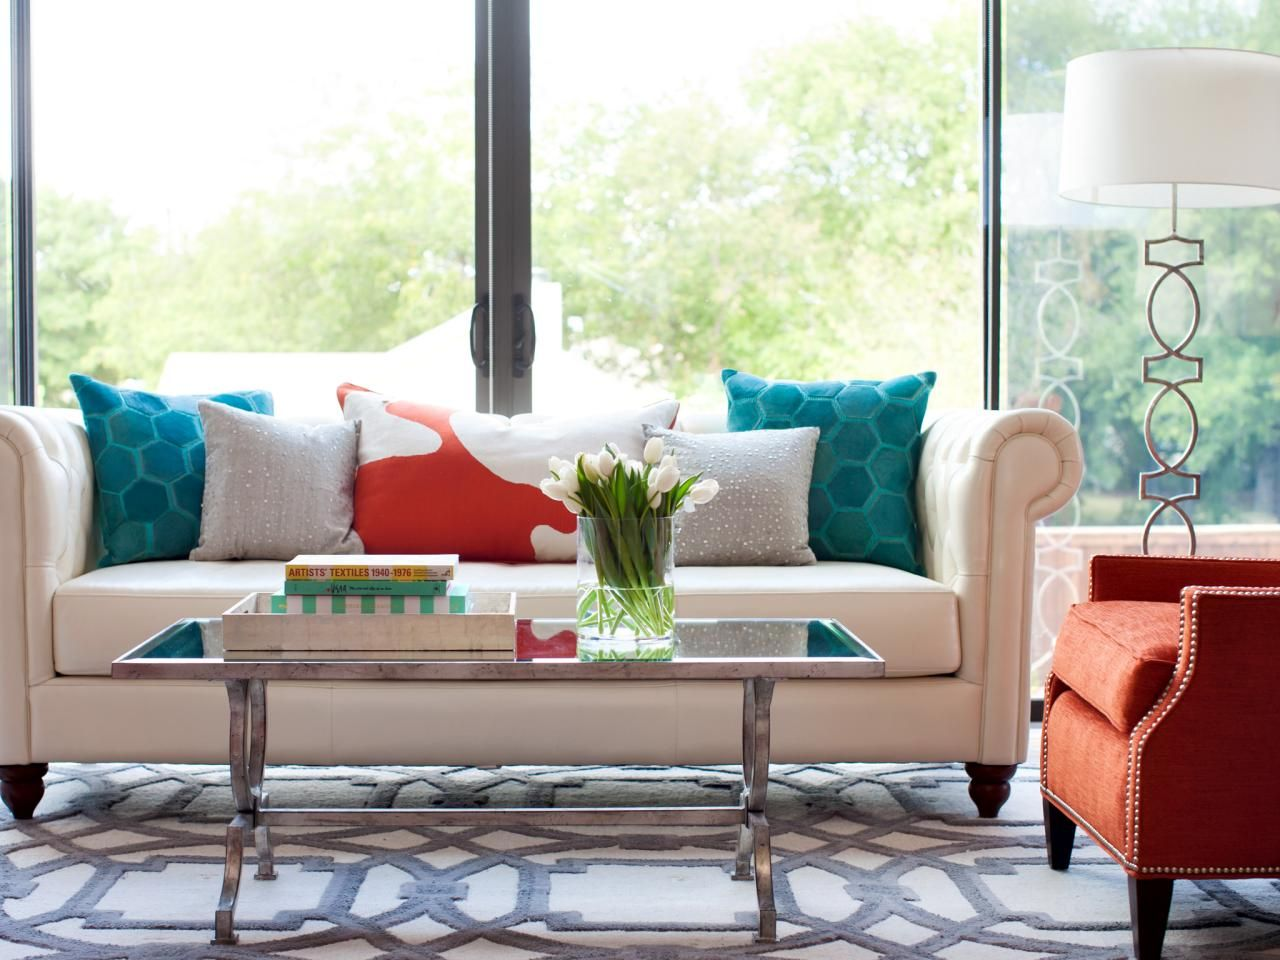 Peacock Color Living Room Create A Lively Living Room With Energetic Shades Designer Abbe